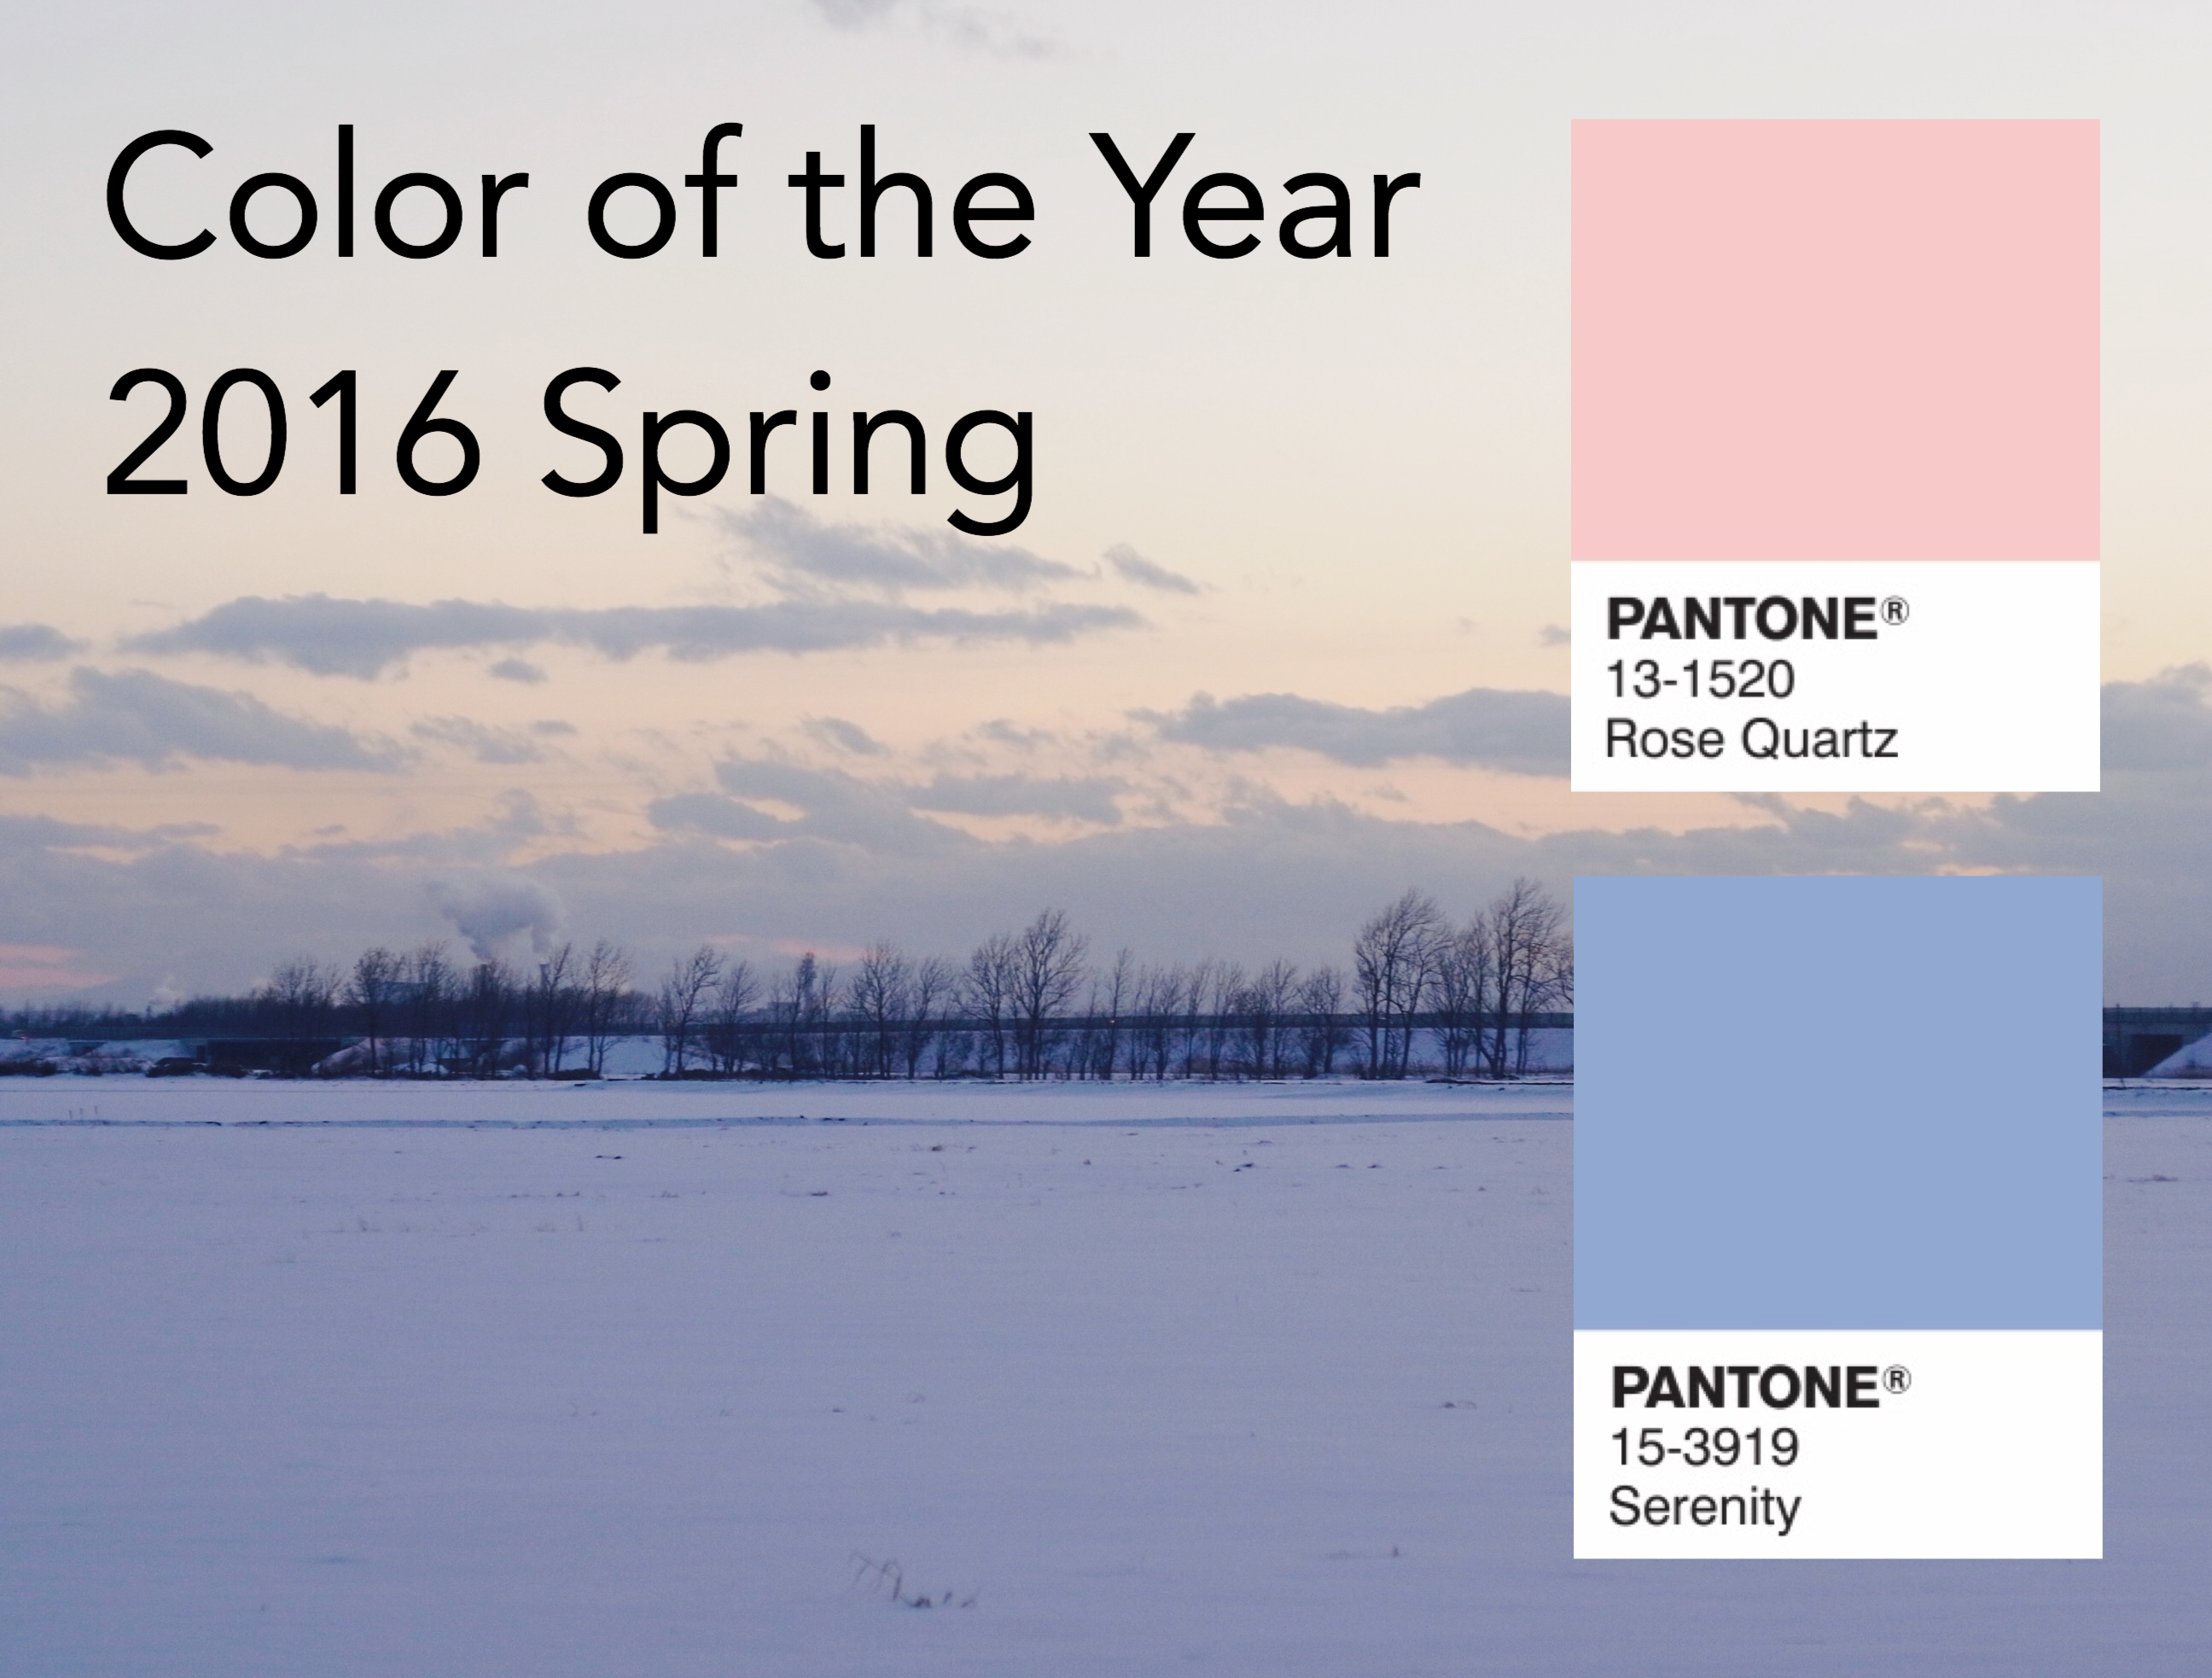 Pantone Color of the Year 2016 Spring , Rose Quartz & Serenity